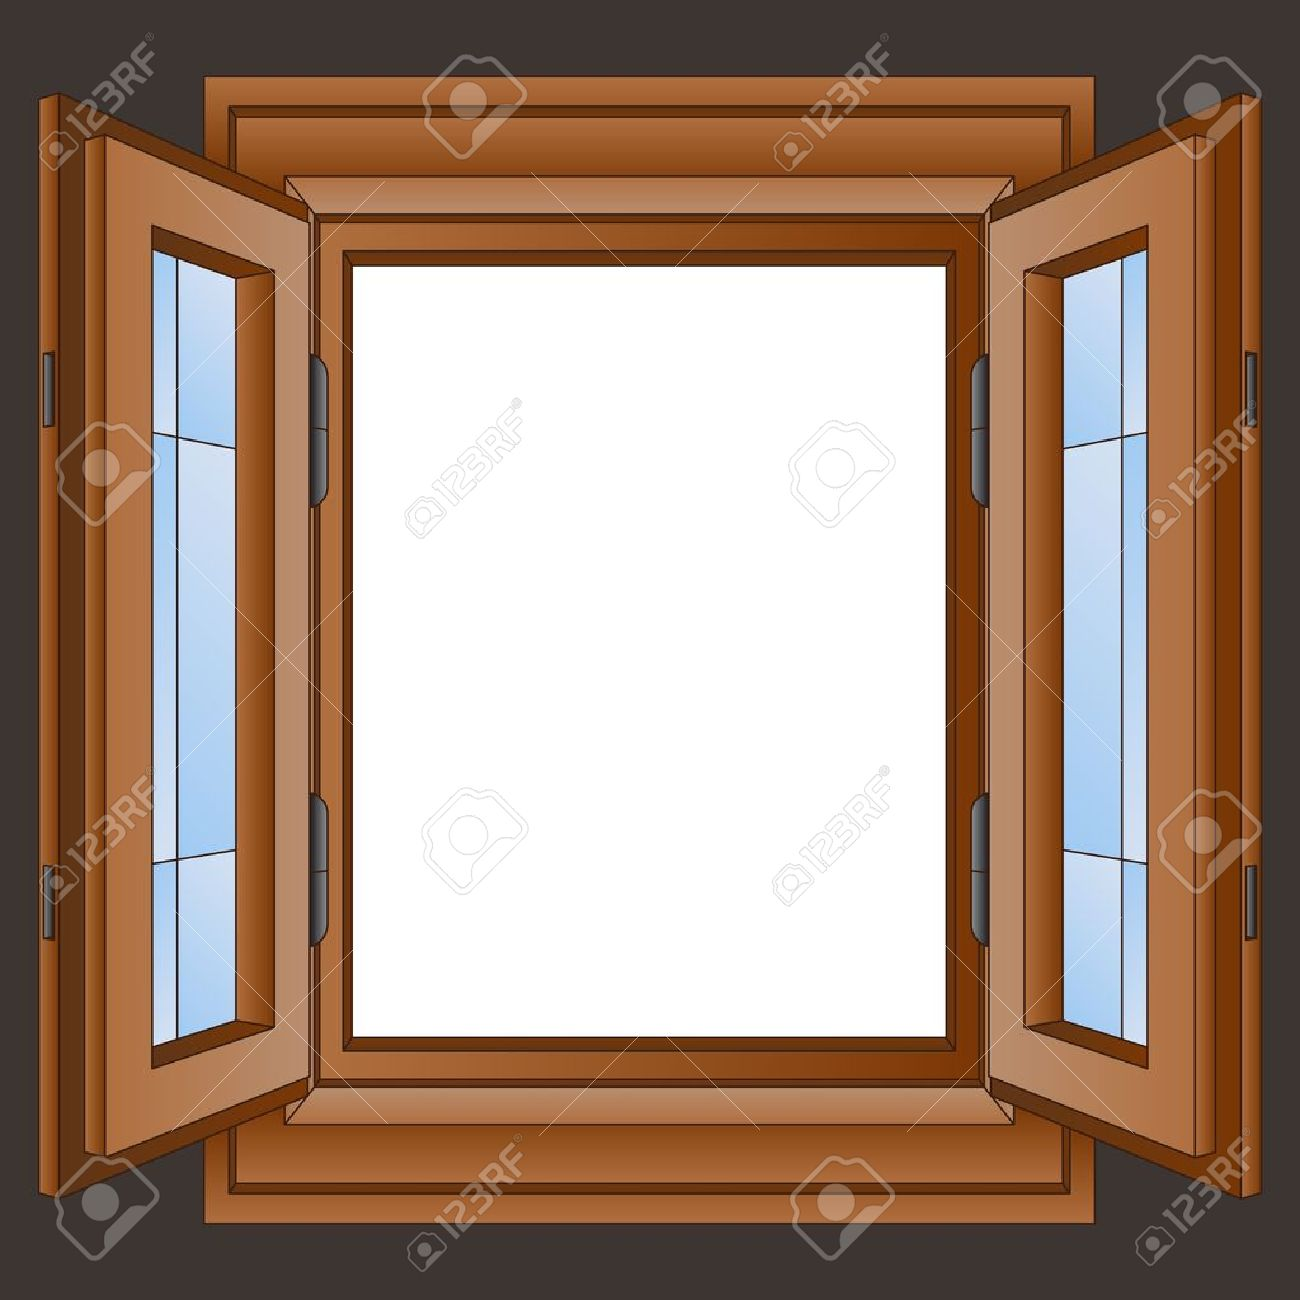 House window frame - Beautiful House Window Reflection Open Wooden Window Frame In The Wall Vector Illustration